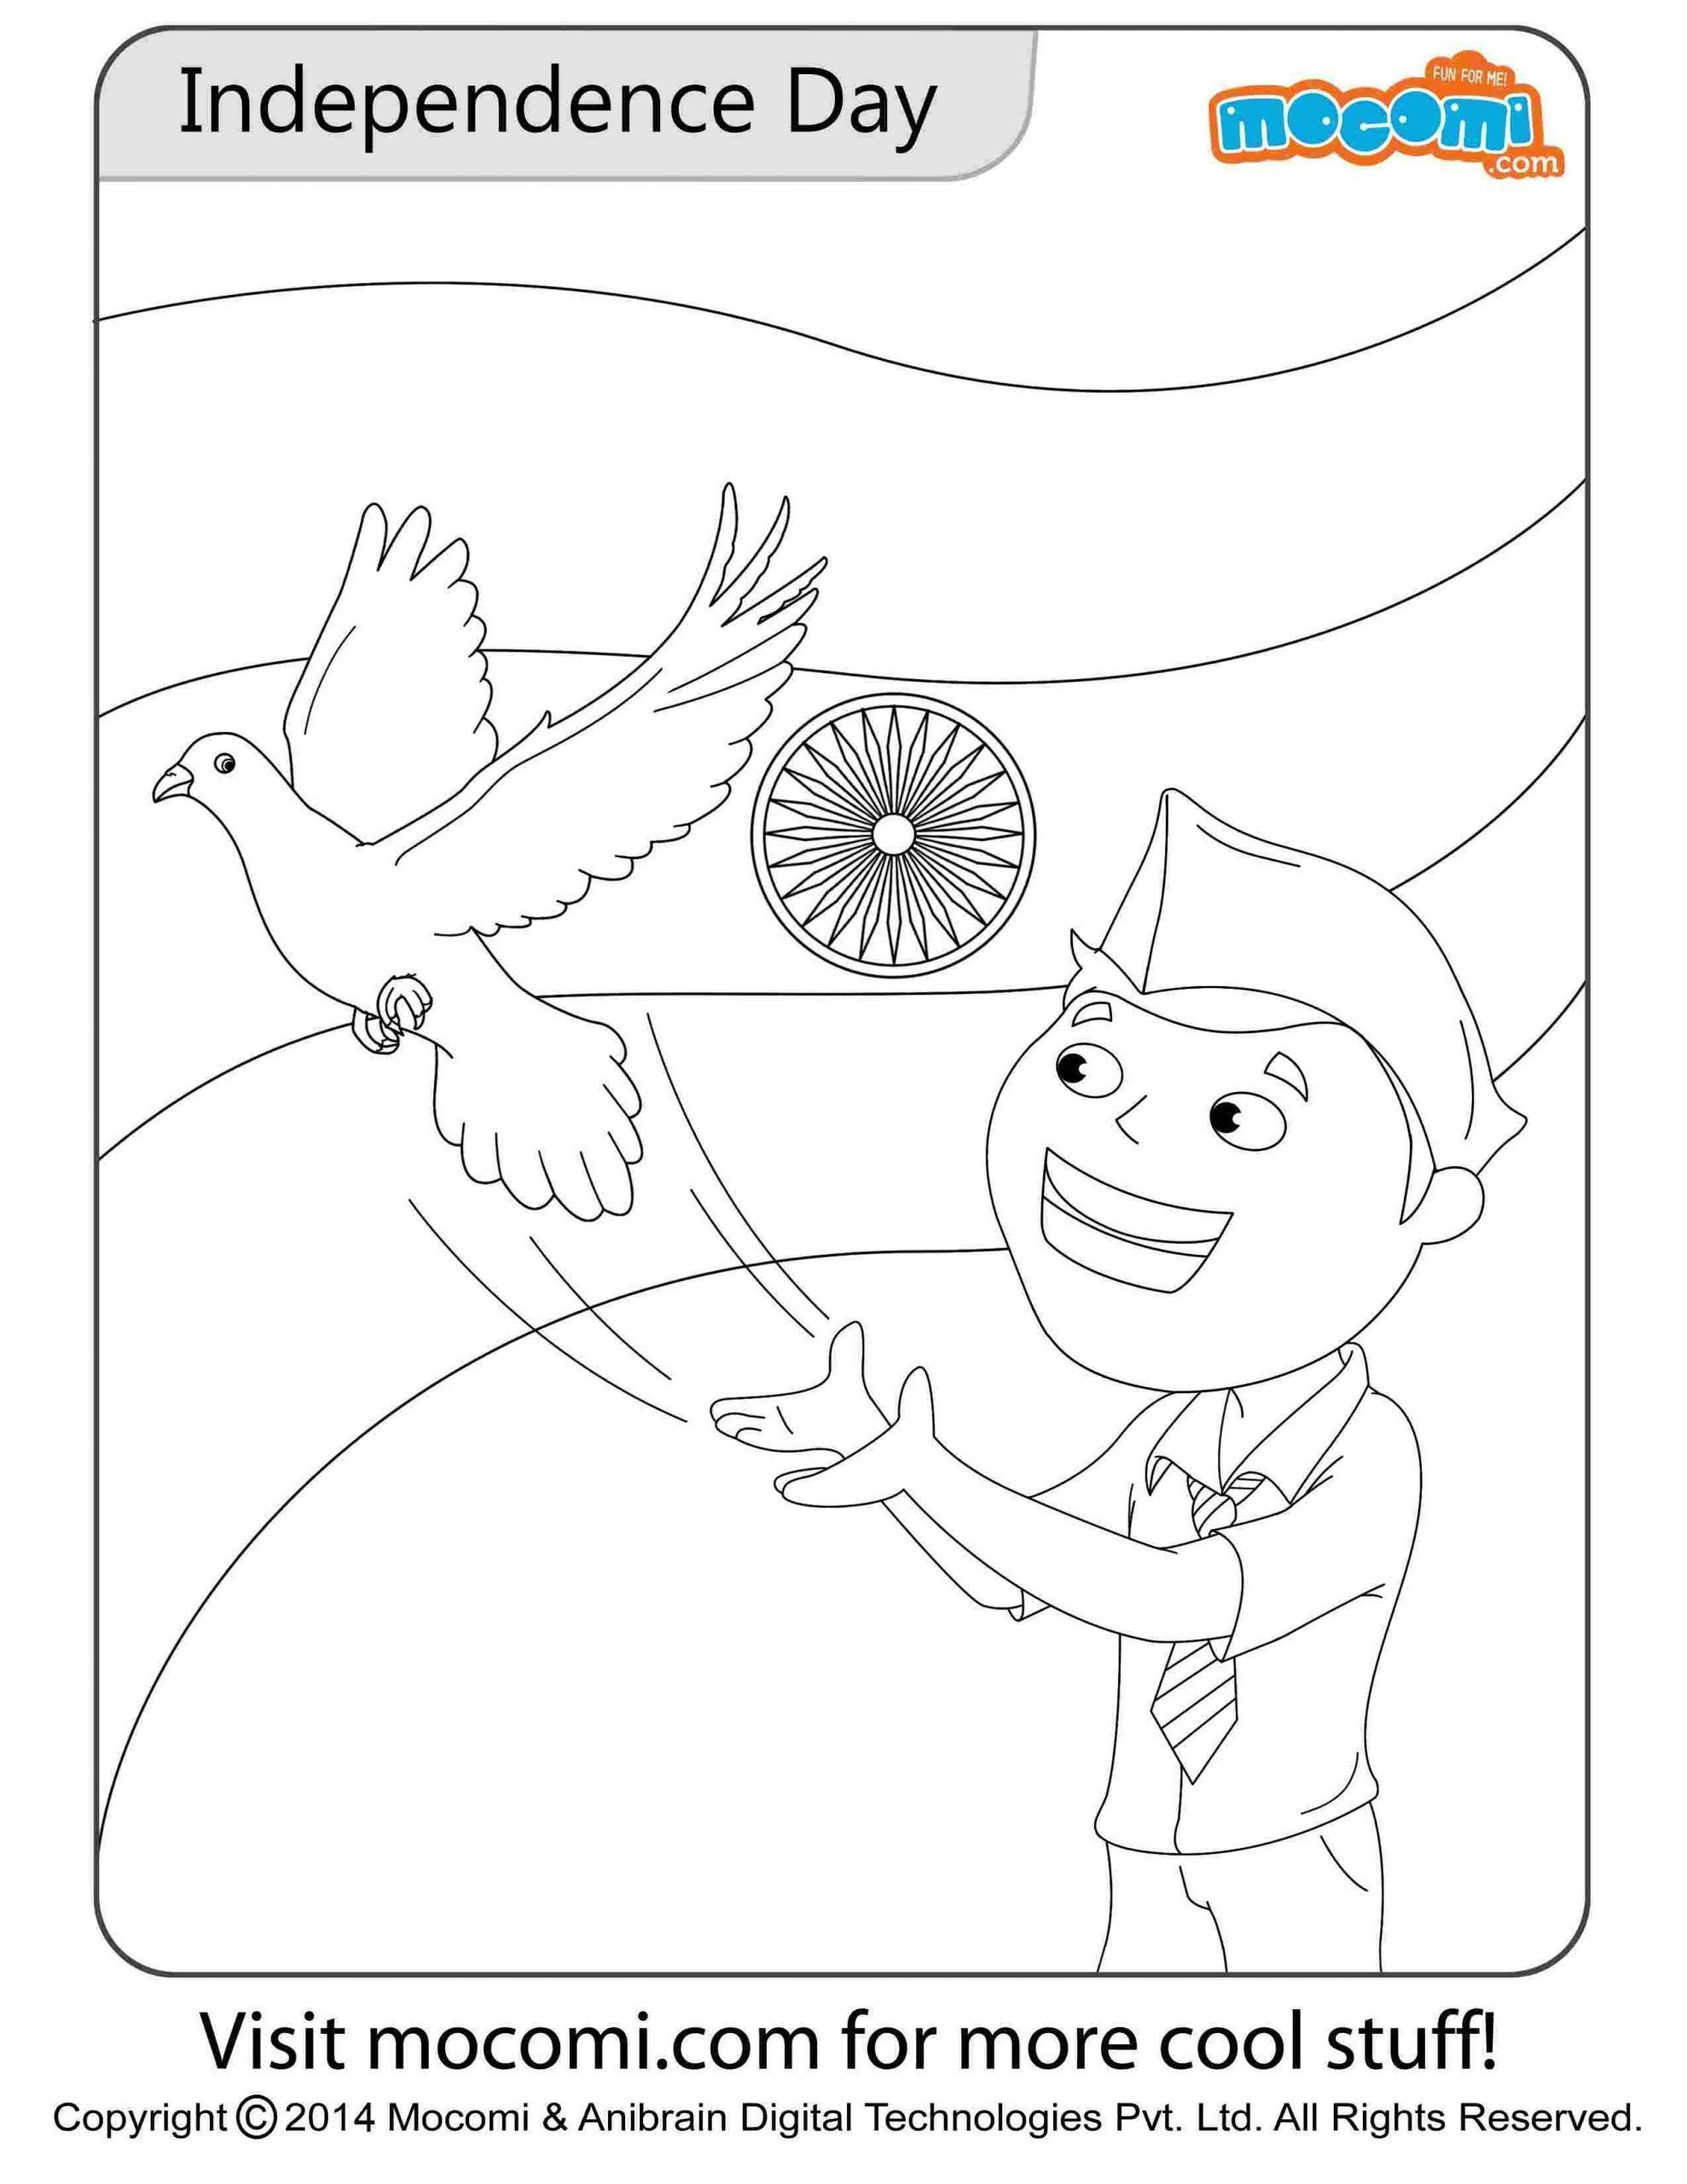 Independence Day Worksheets For Kindergarten Worksheet For Kindergarten Independence Day Drawing Online Coloring Pages Flag Coloring Pages [ 2560 x 1978 Pixel ]